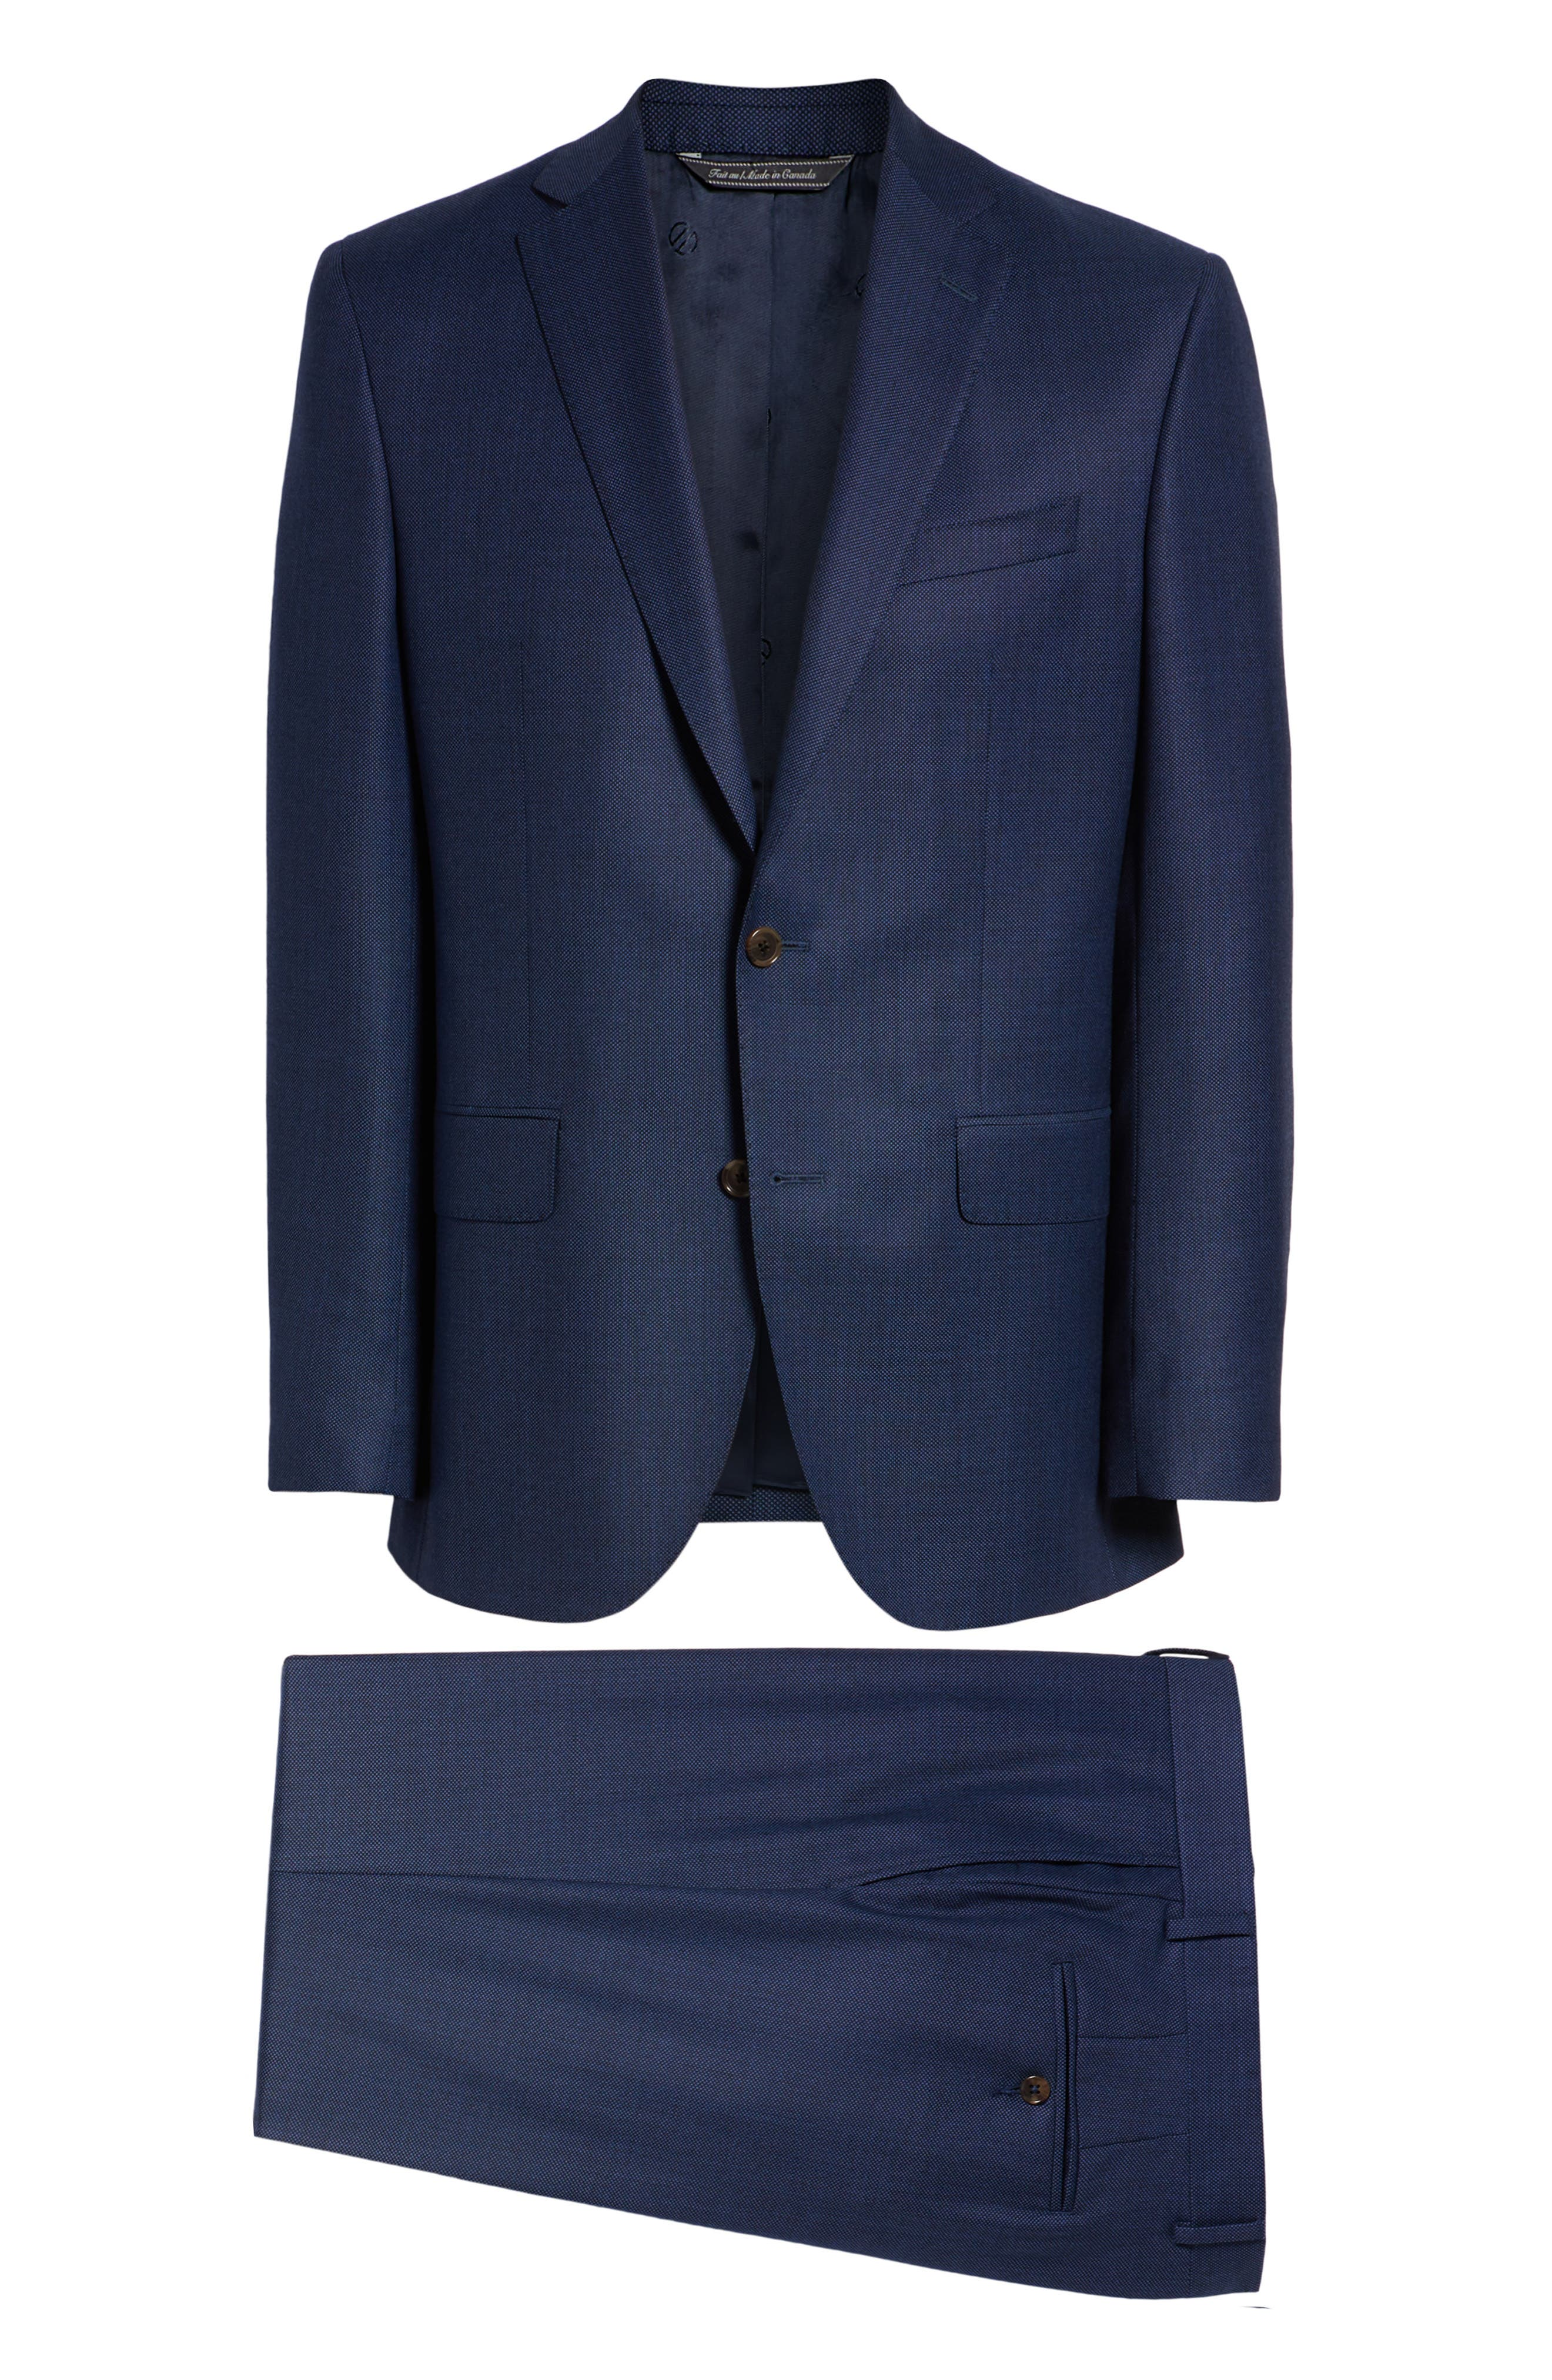 Ryan Classic Fit Solid Wool Suit,                             Alternate thumbnail 9, color,                             400